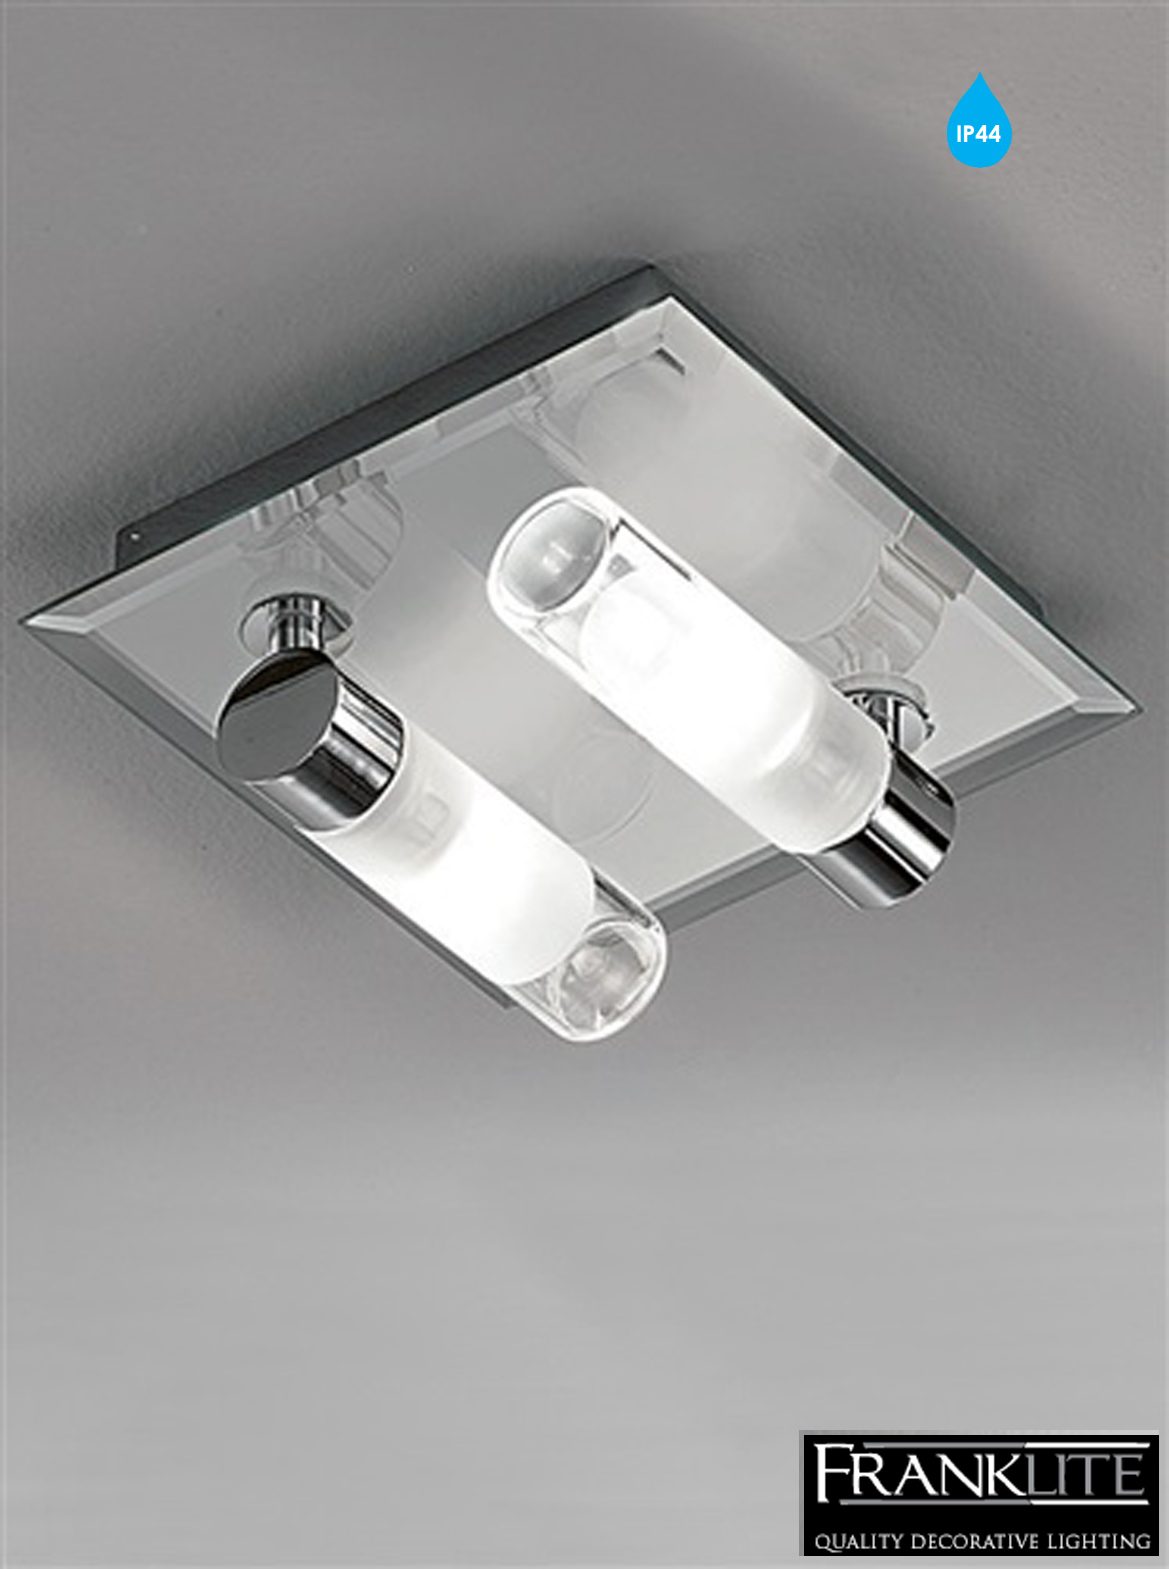 franklite glass chrome square 2 light ip44 bathroom ceiling fitting